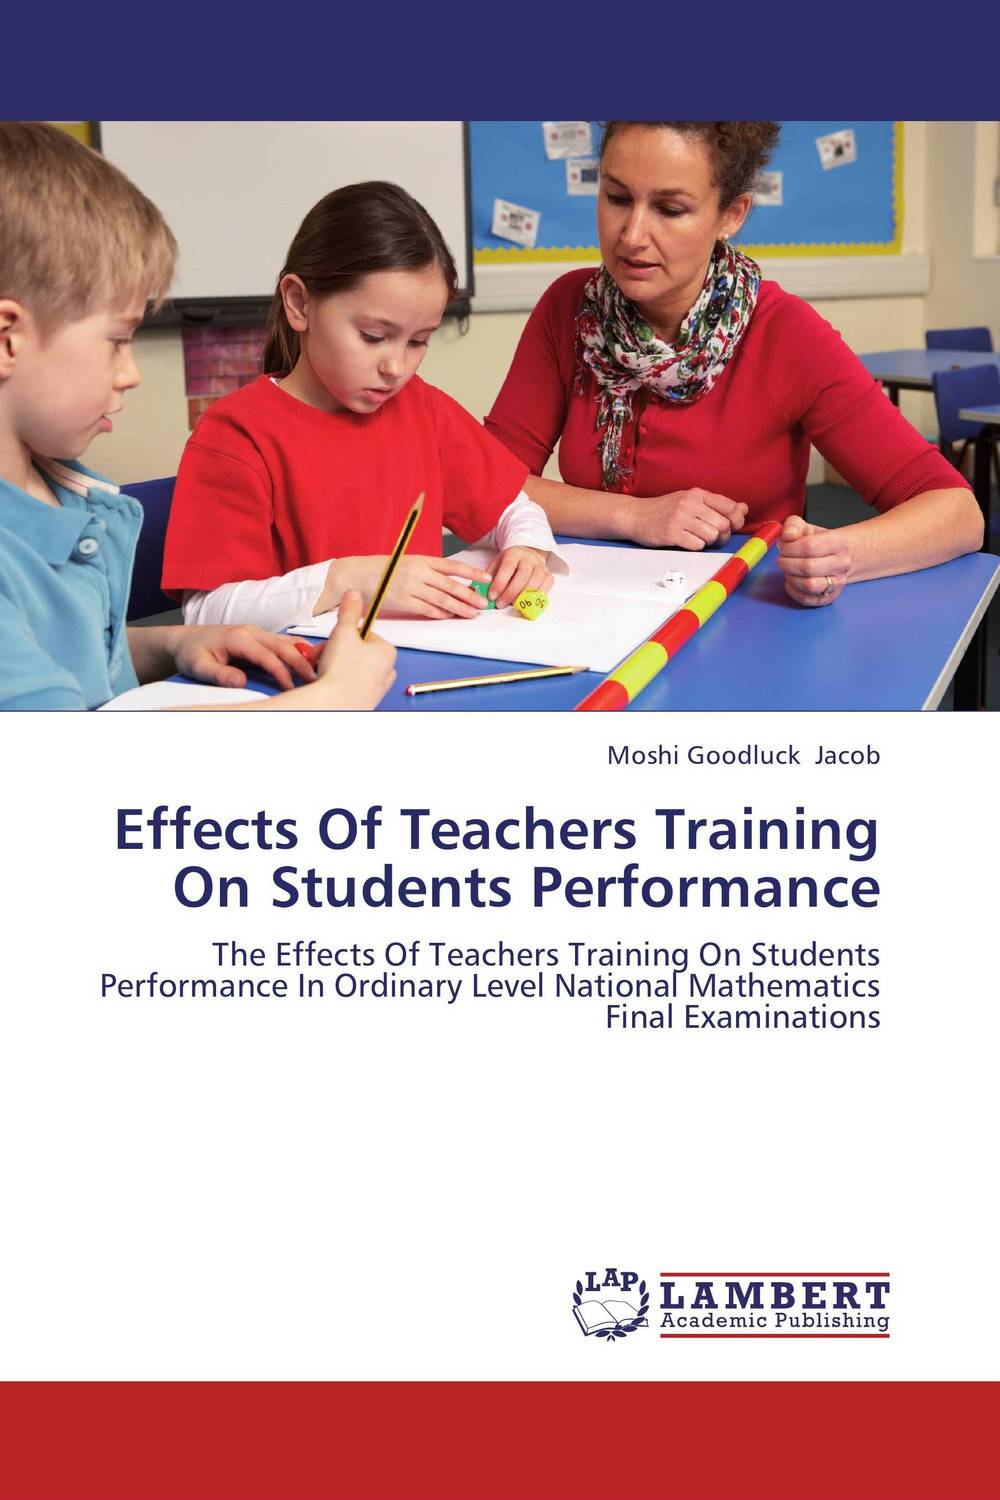 Effects Of Teachers Training On Students Performance